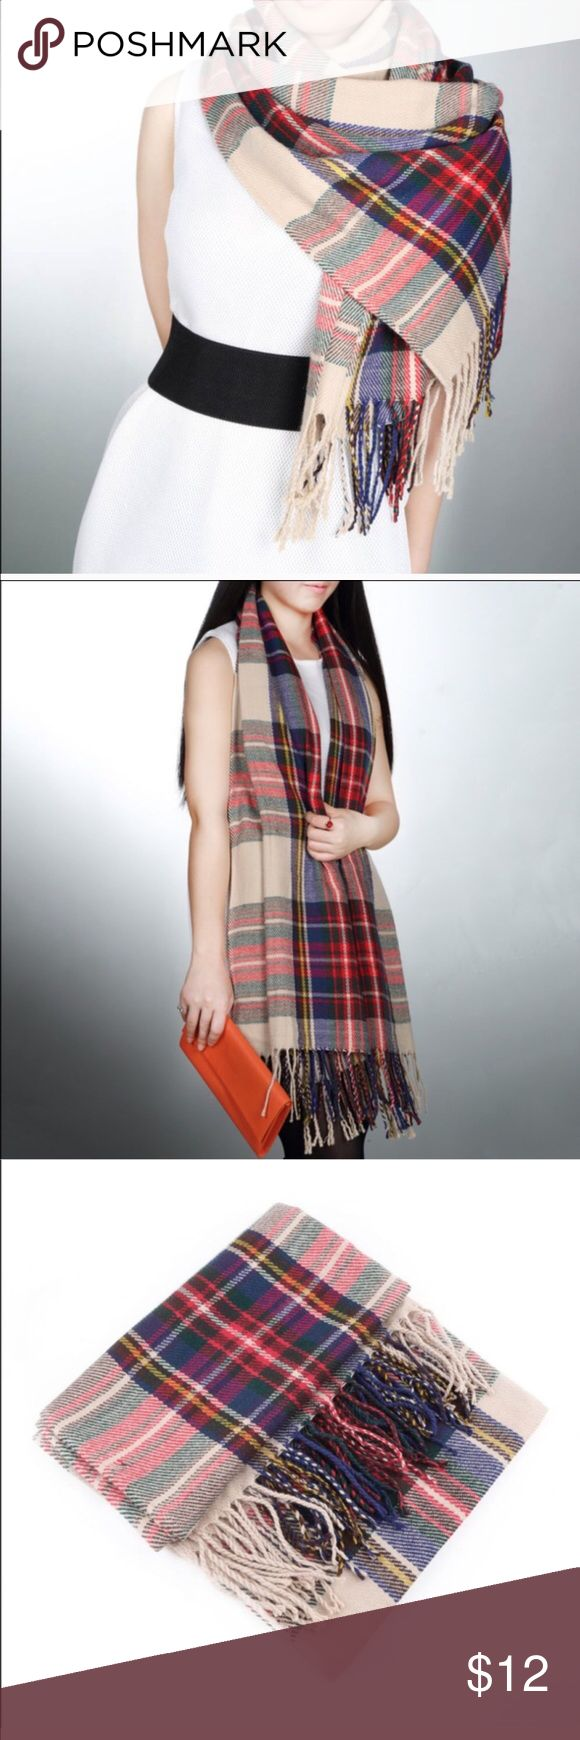 Plaid blanket scarf Not the big square kind but a little more rectangle shape for easier wear, super soft! New in packaging. Accessories Scarves & Wraps